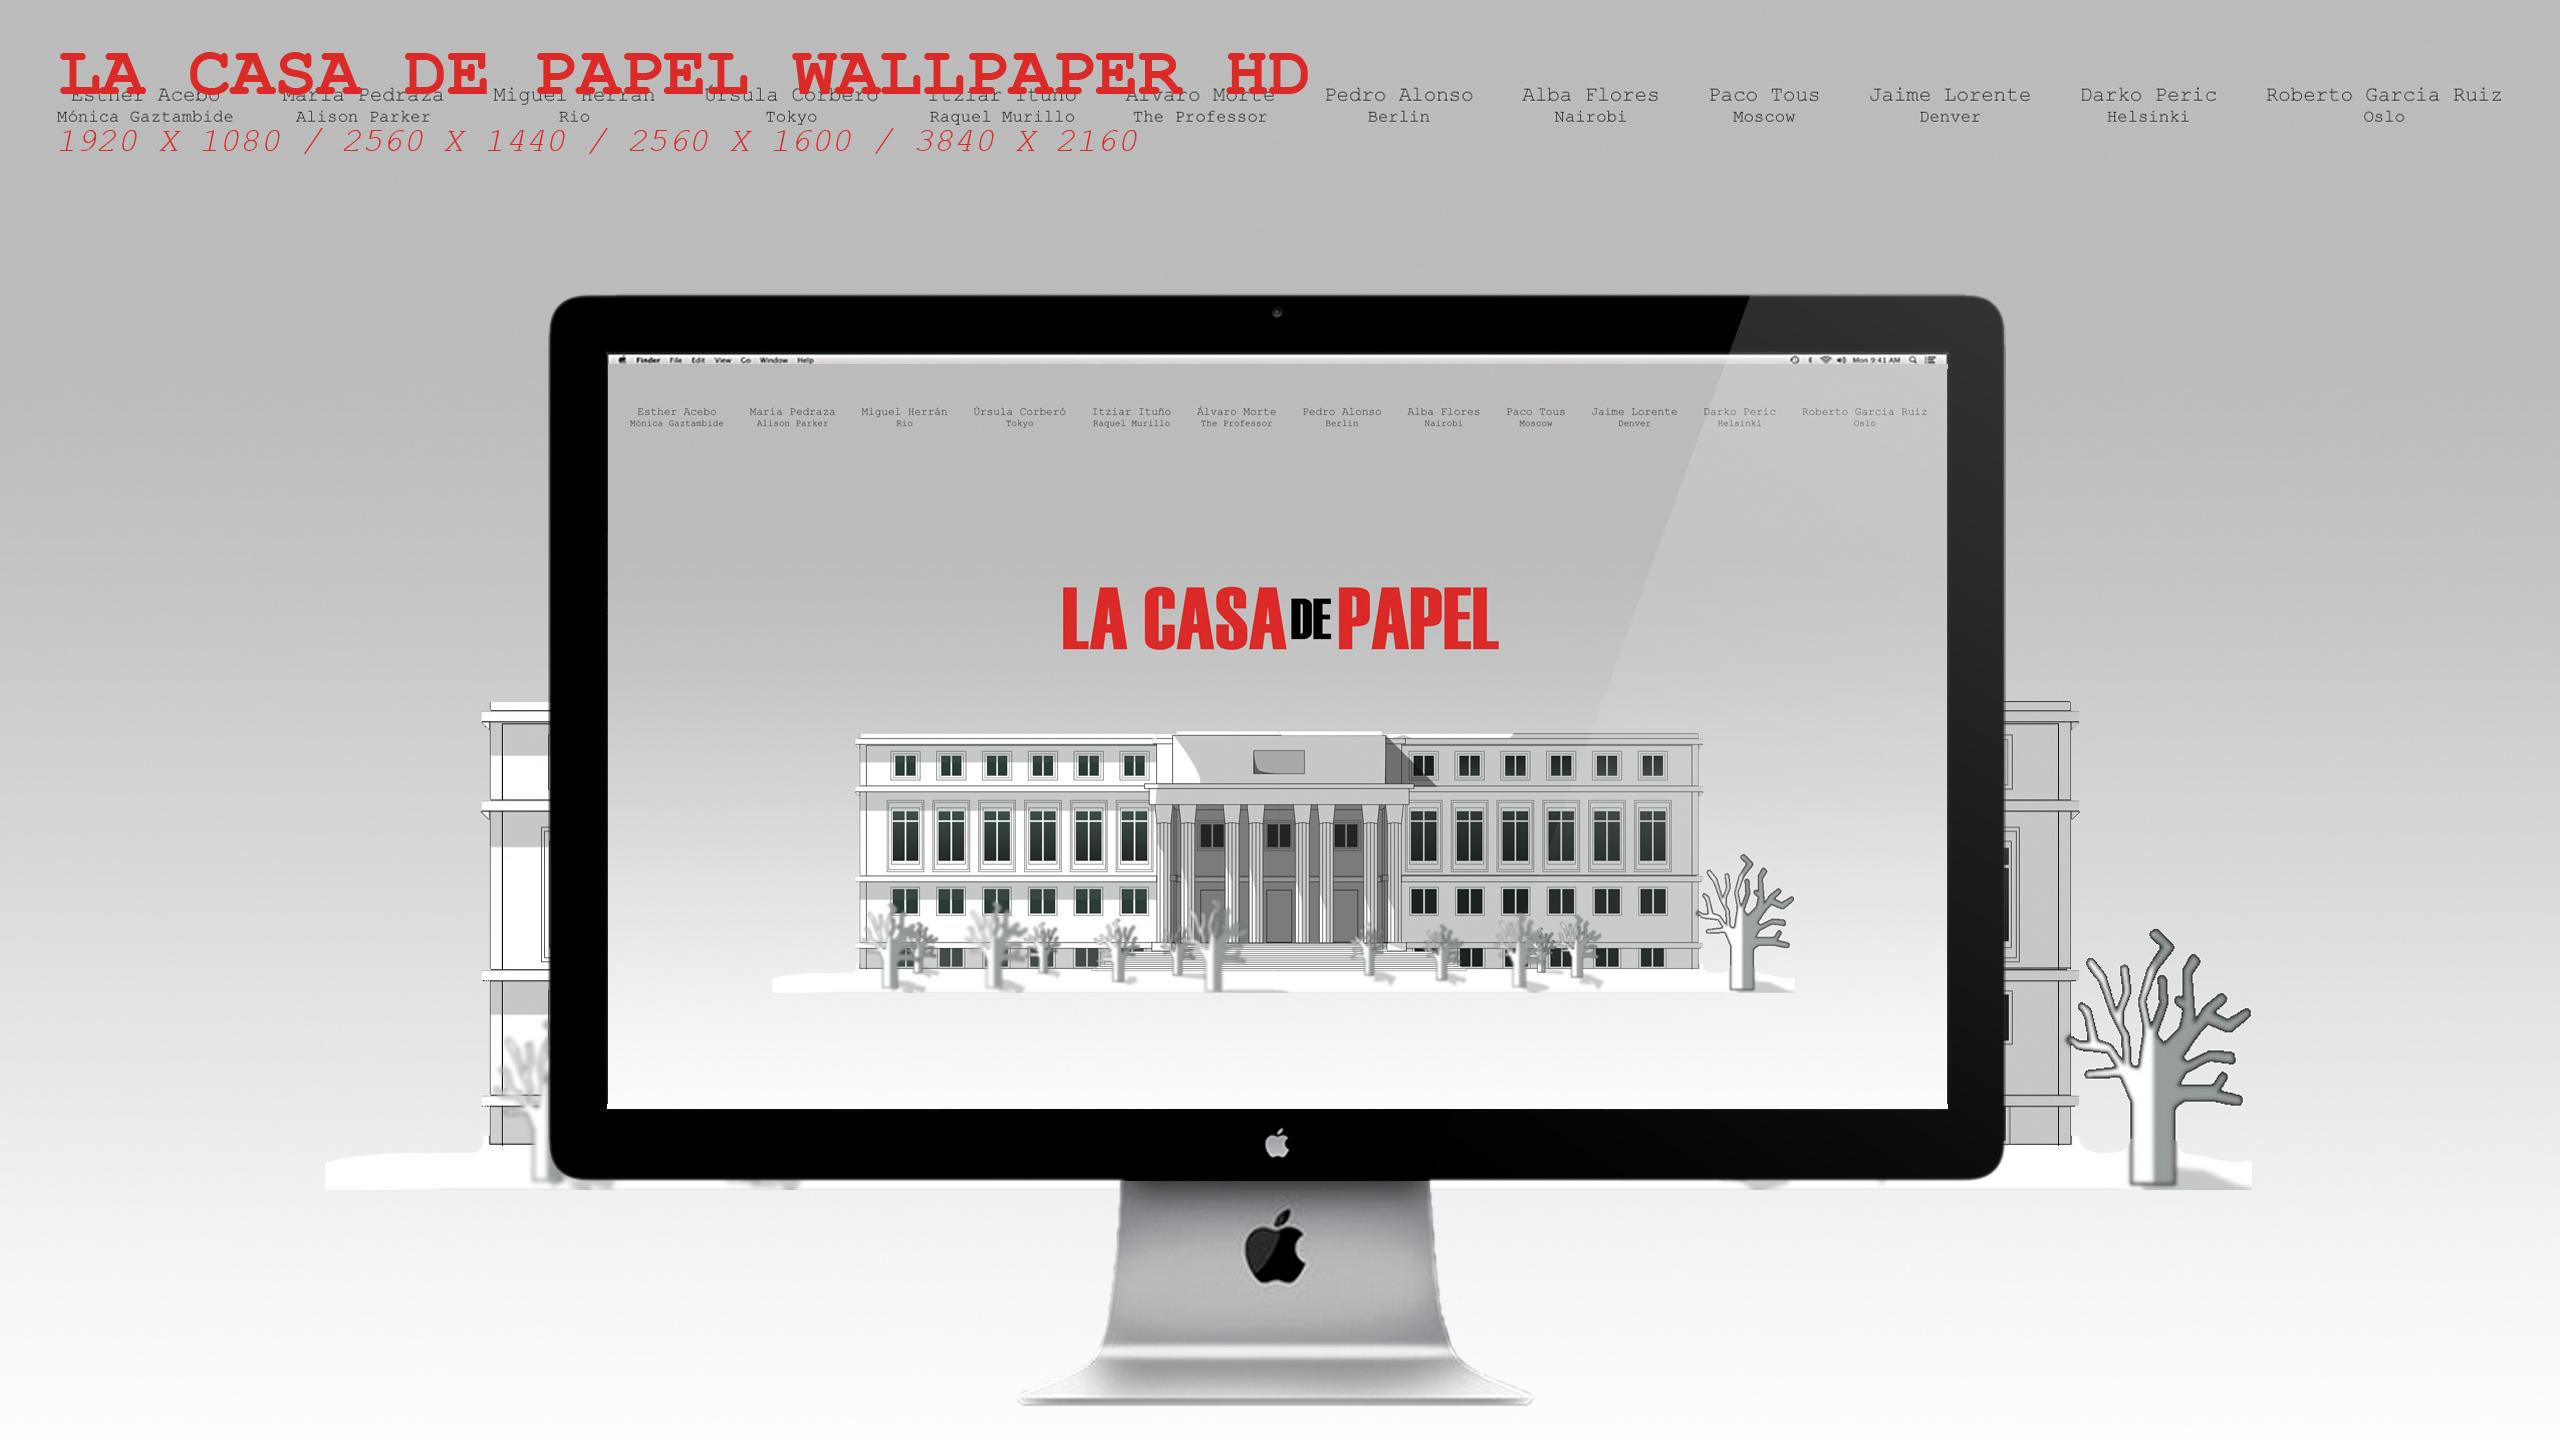 La Casa De Papel Wallpaper Hd By Beaware8 On Deviantart